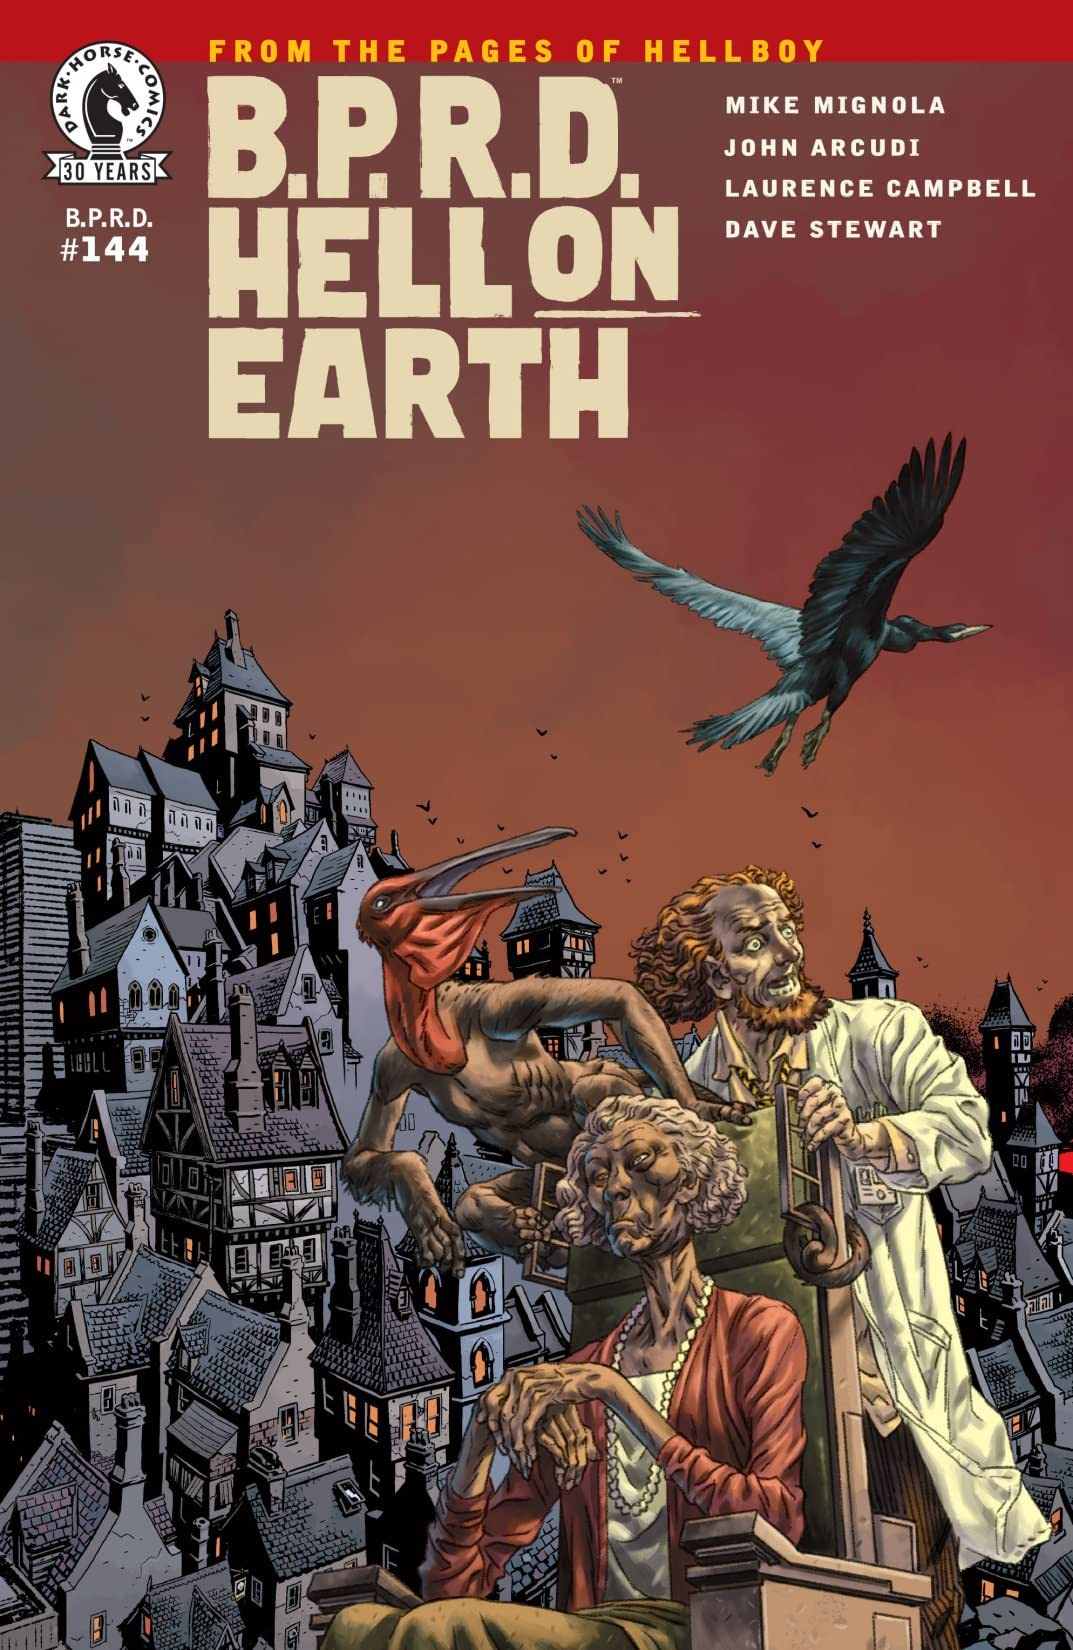 B.P.R.D.: Hell on Earth #144